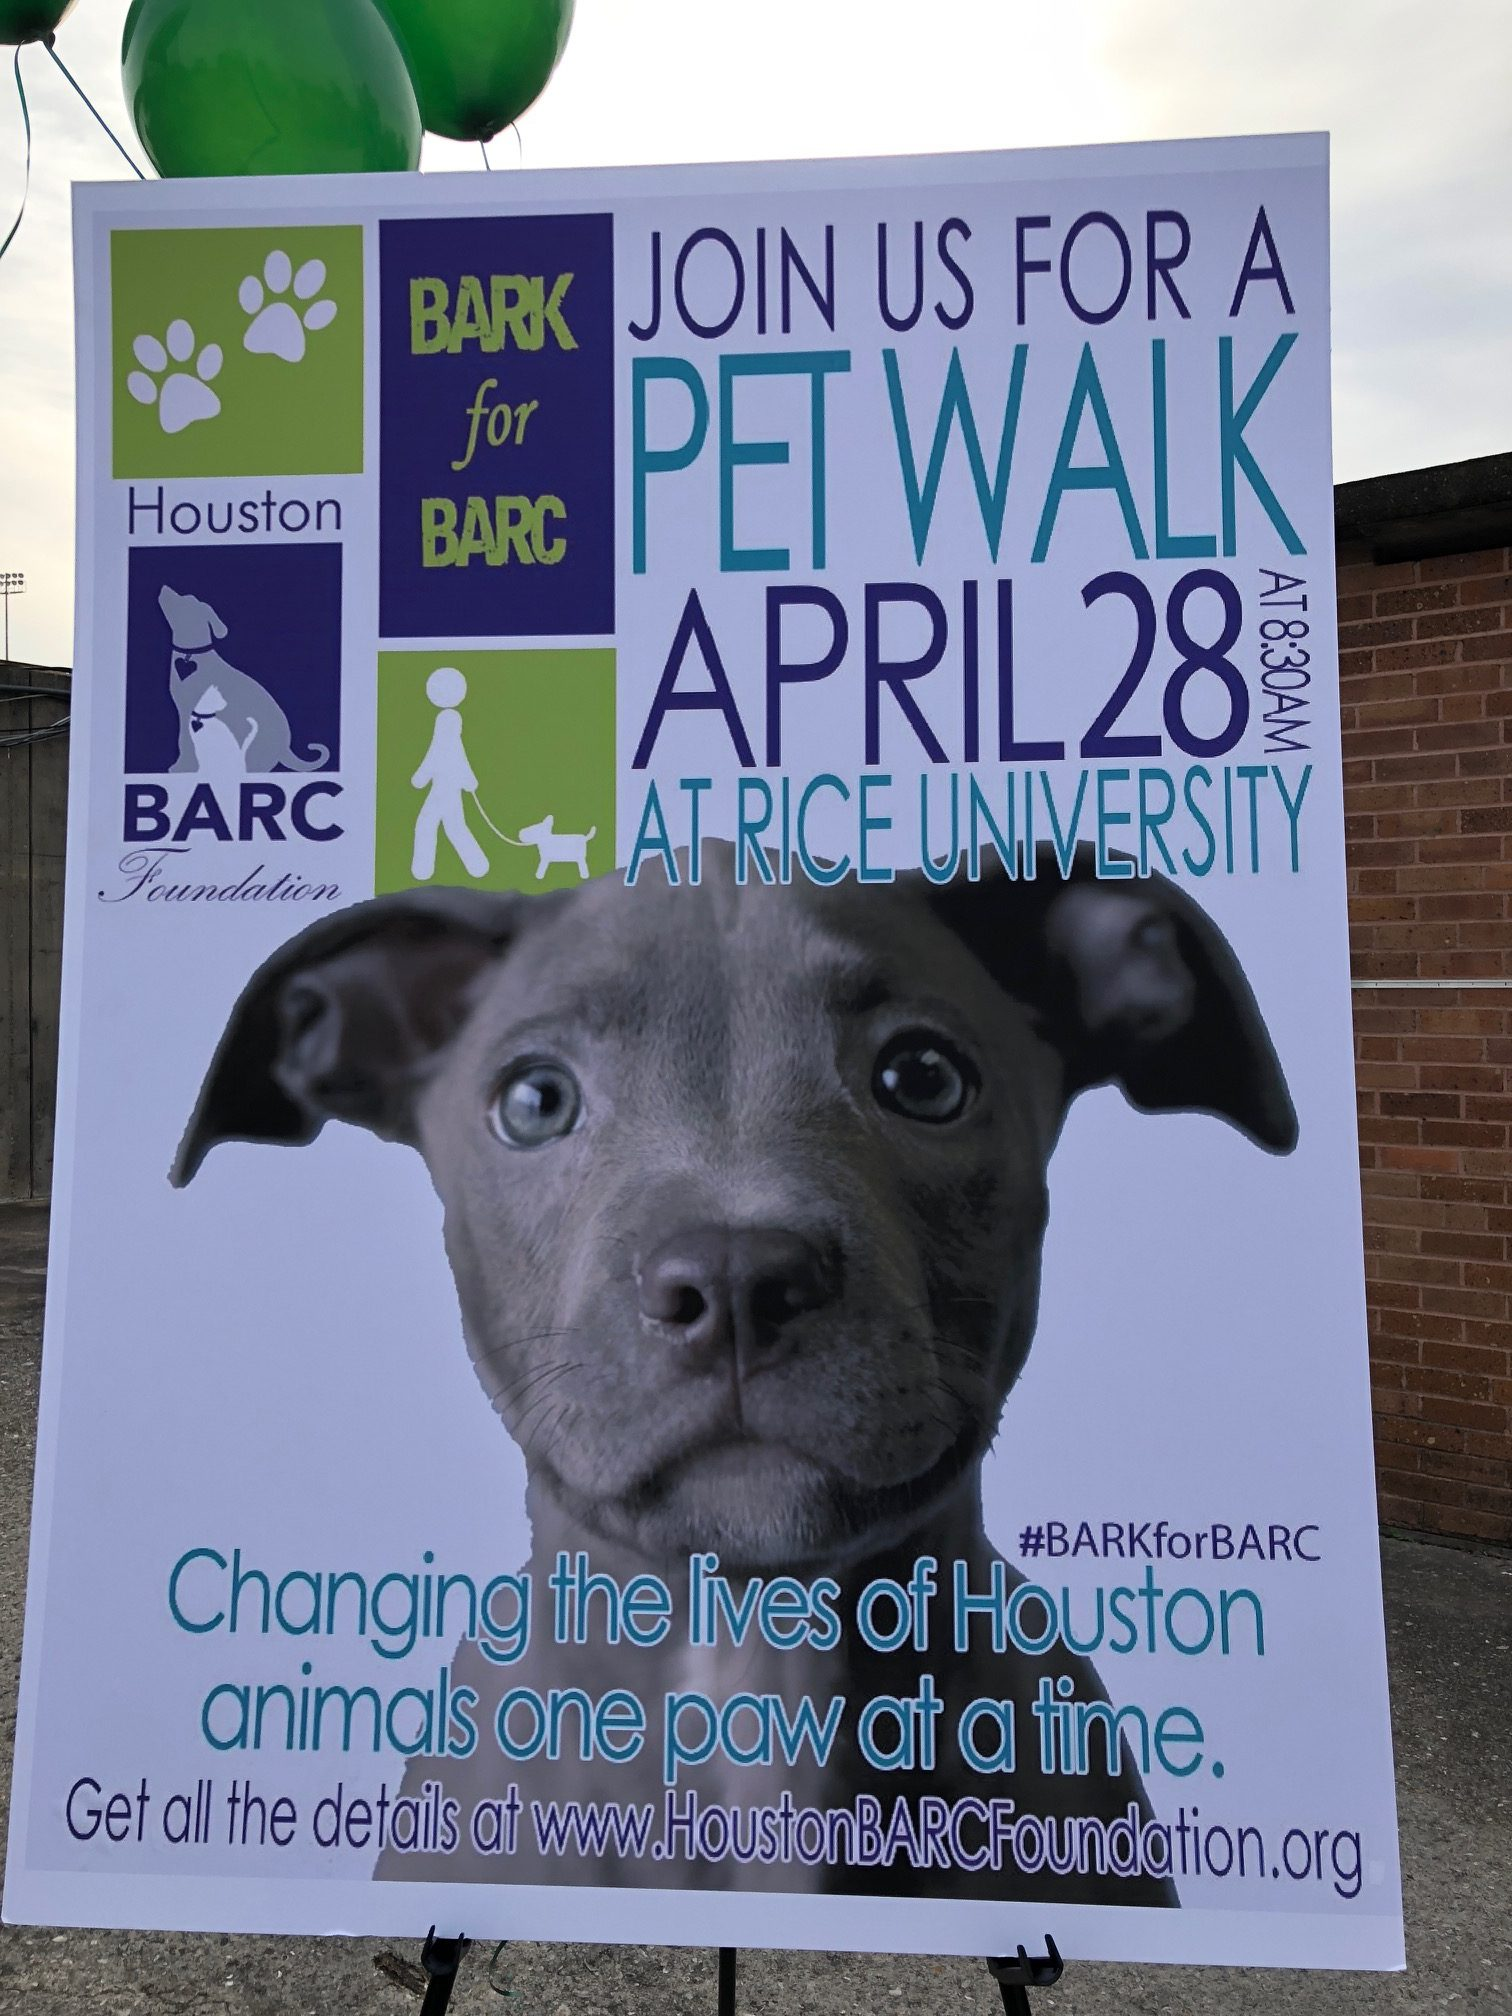 Houston's BARC Animal Shelter: Fundraising Photos